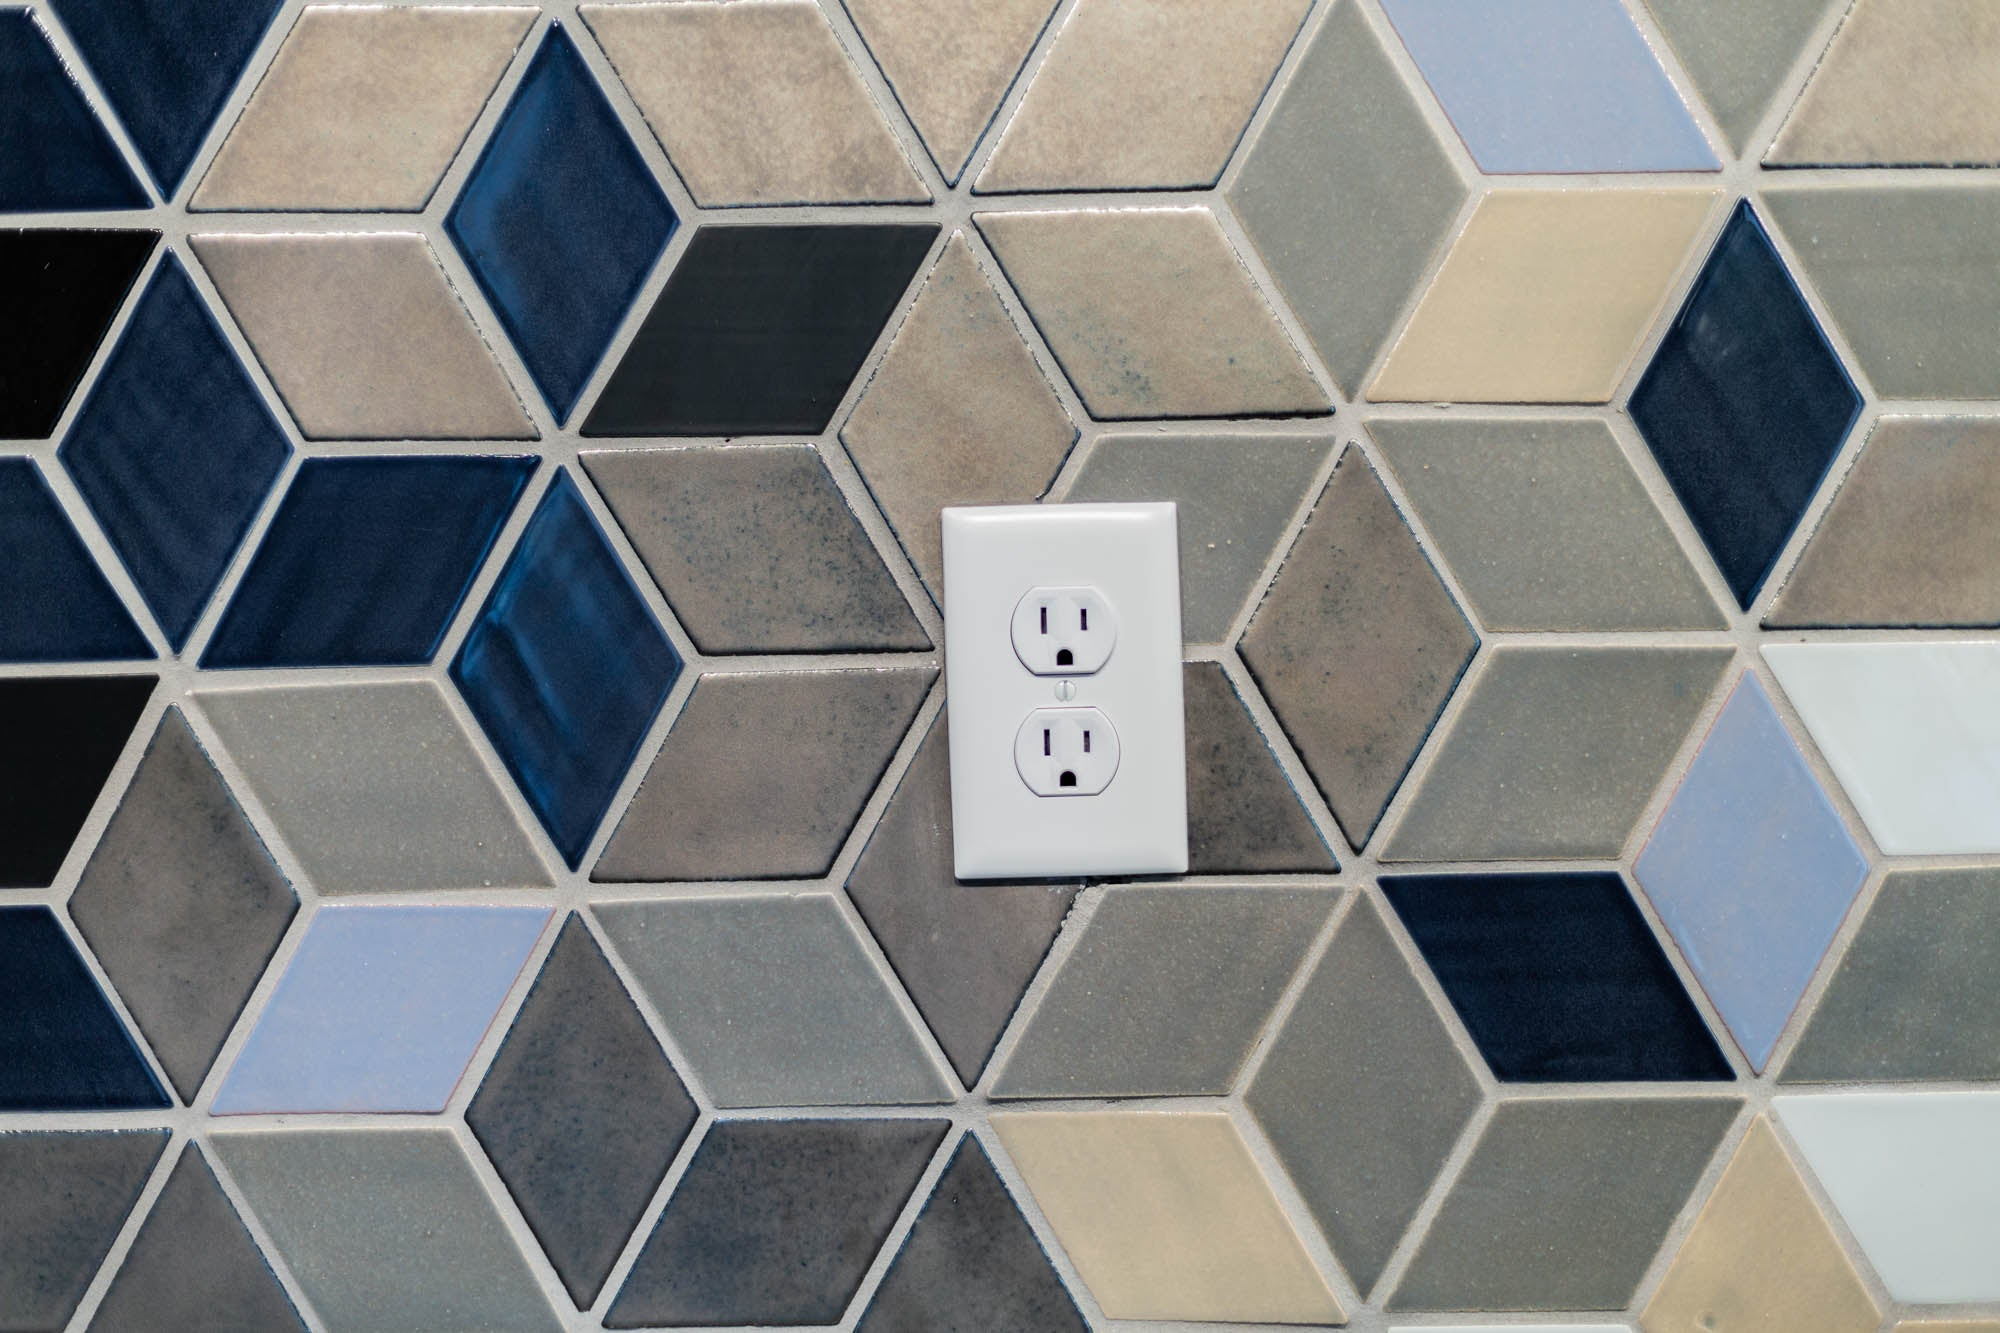 Ceramic Tile and Outlet